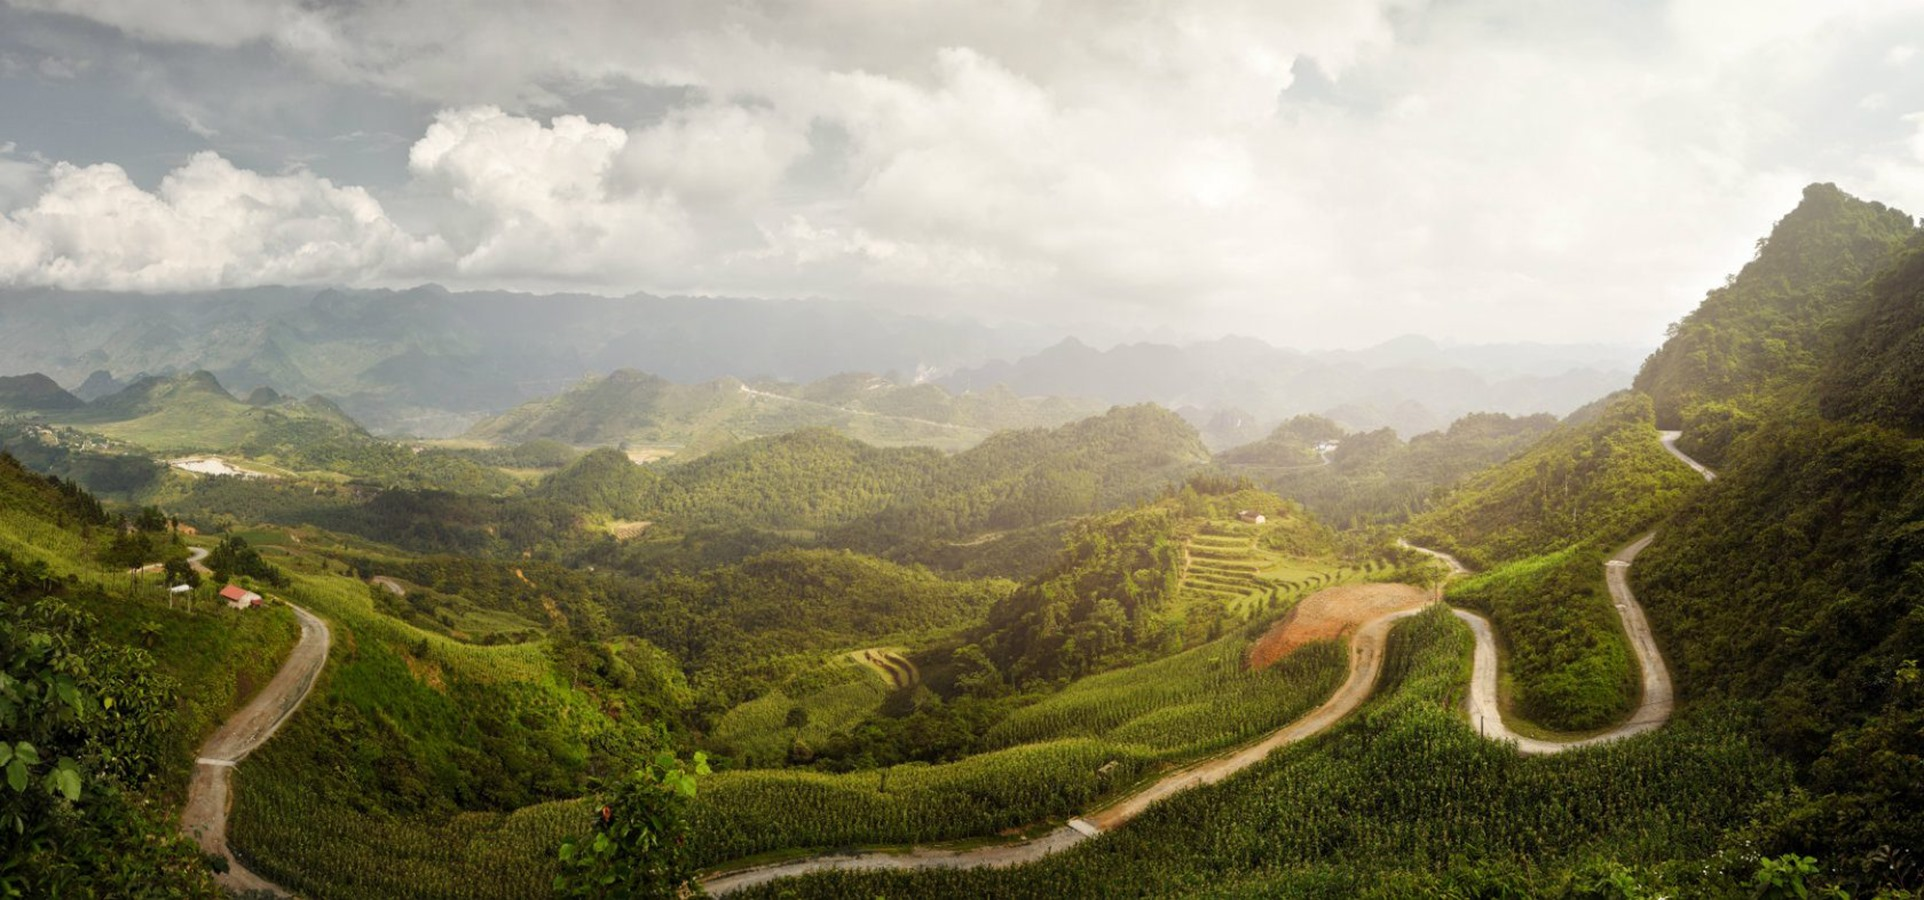 Verdant valleys and winding roads going through hills and mountains make Ha Giang charming. Besides, its ethnic villages contribute to the attraction of the province.